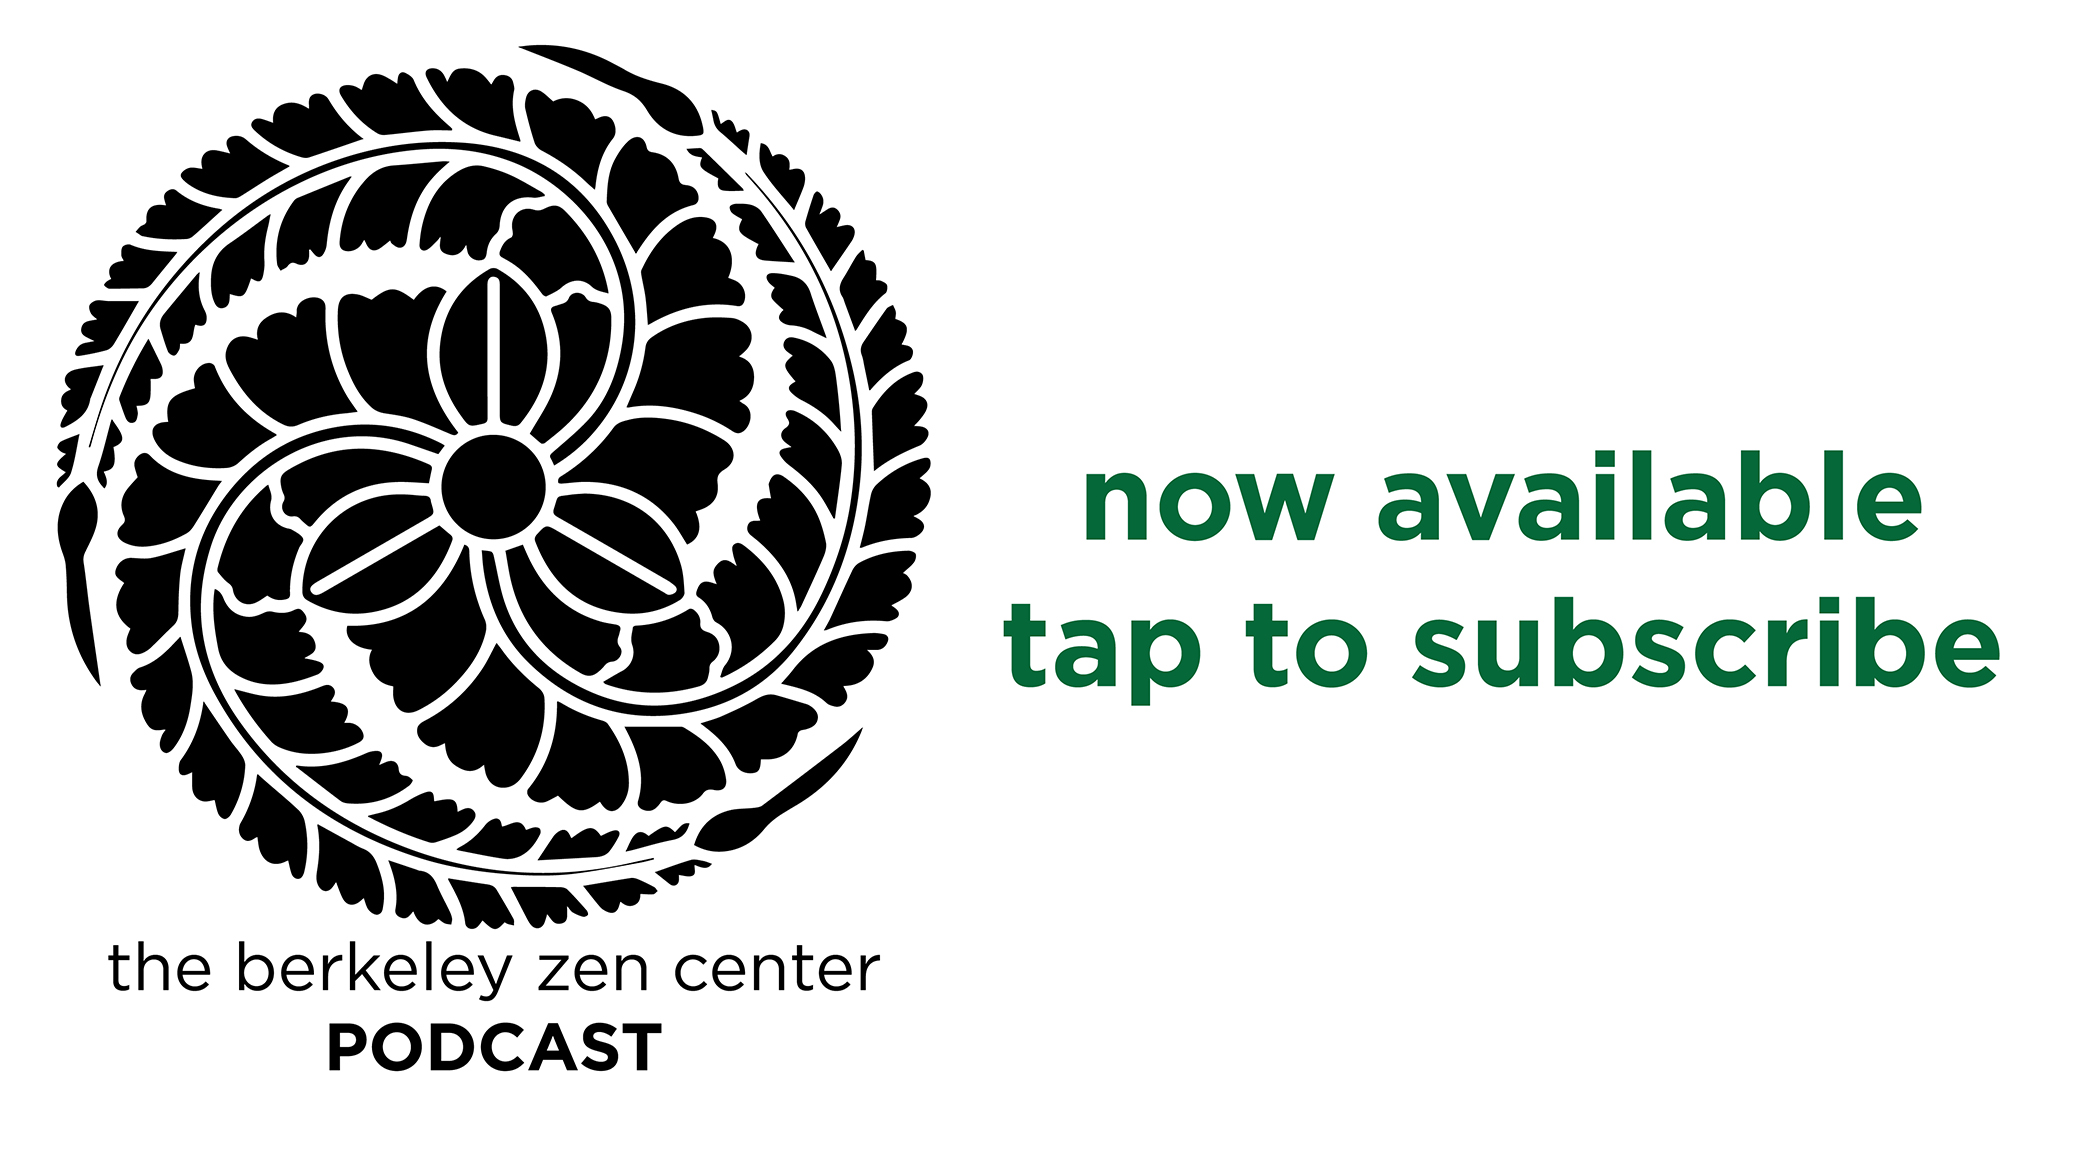 BZC podcast now available on iTunes